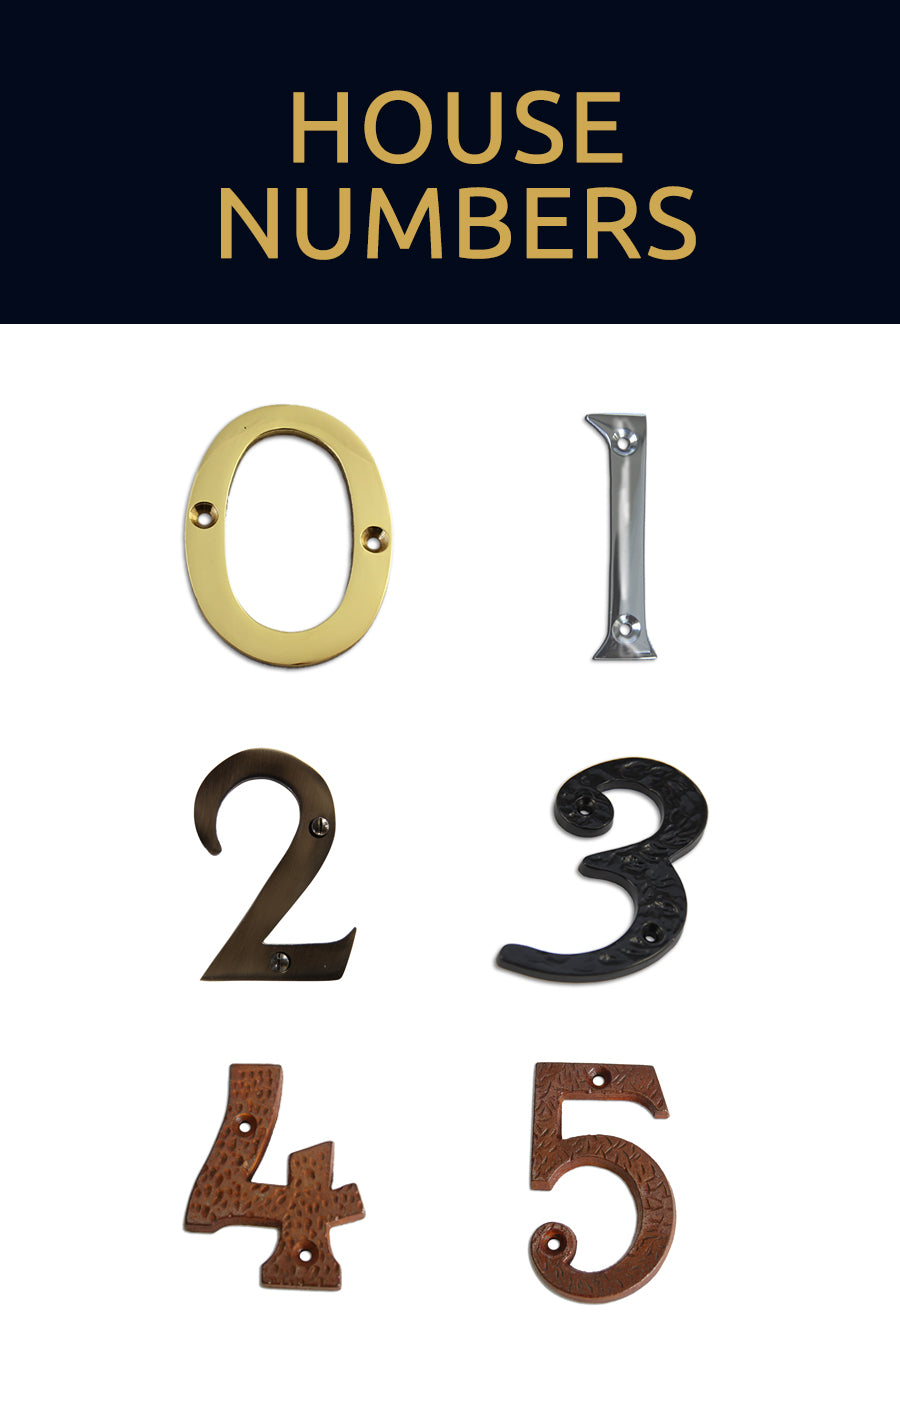 Browse our house numbers collection for metal house numerals on your home's doors and walls